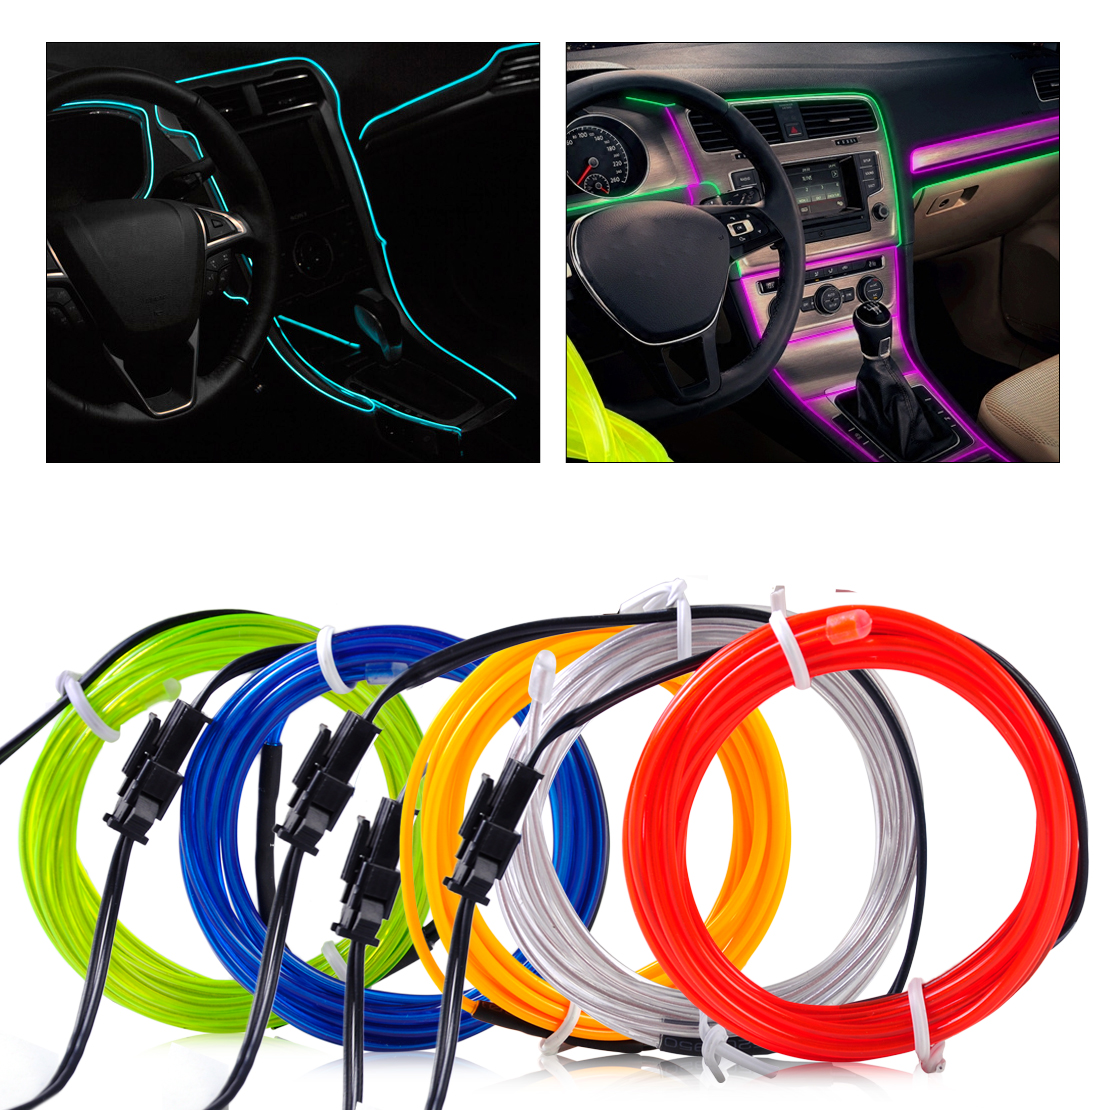 1x new 3mm 2m el wire flexible stylings car interior decor fluorescent neon light strip cold. Black Bedroom Furniture Sets. Home Design Ideas